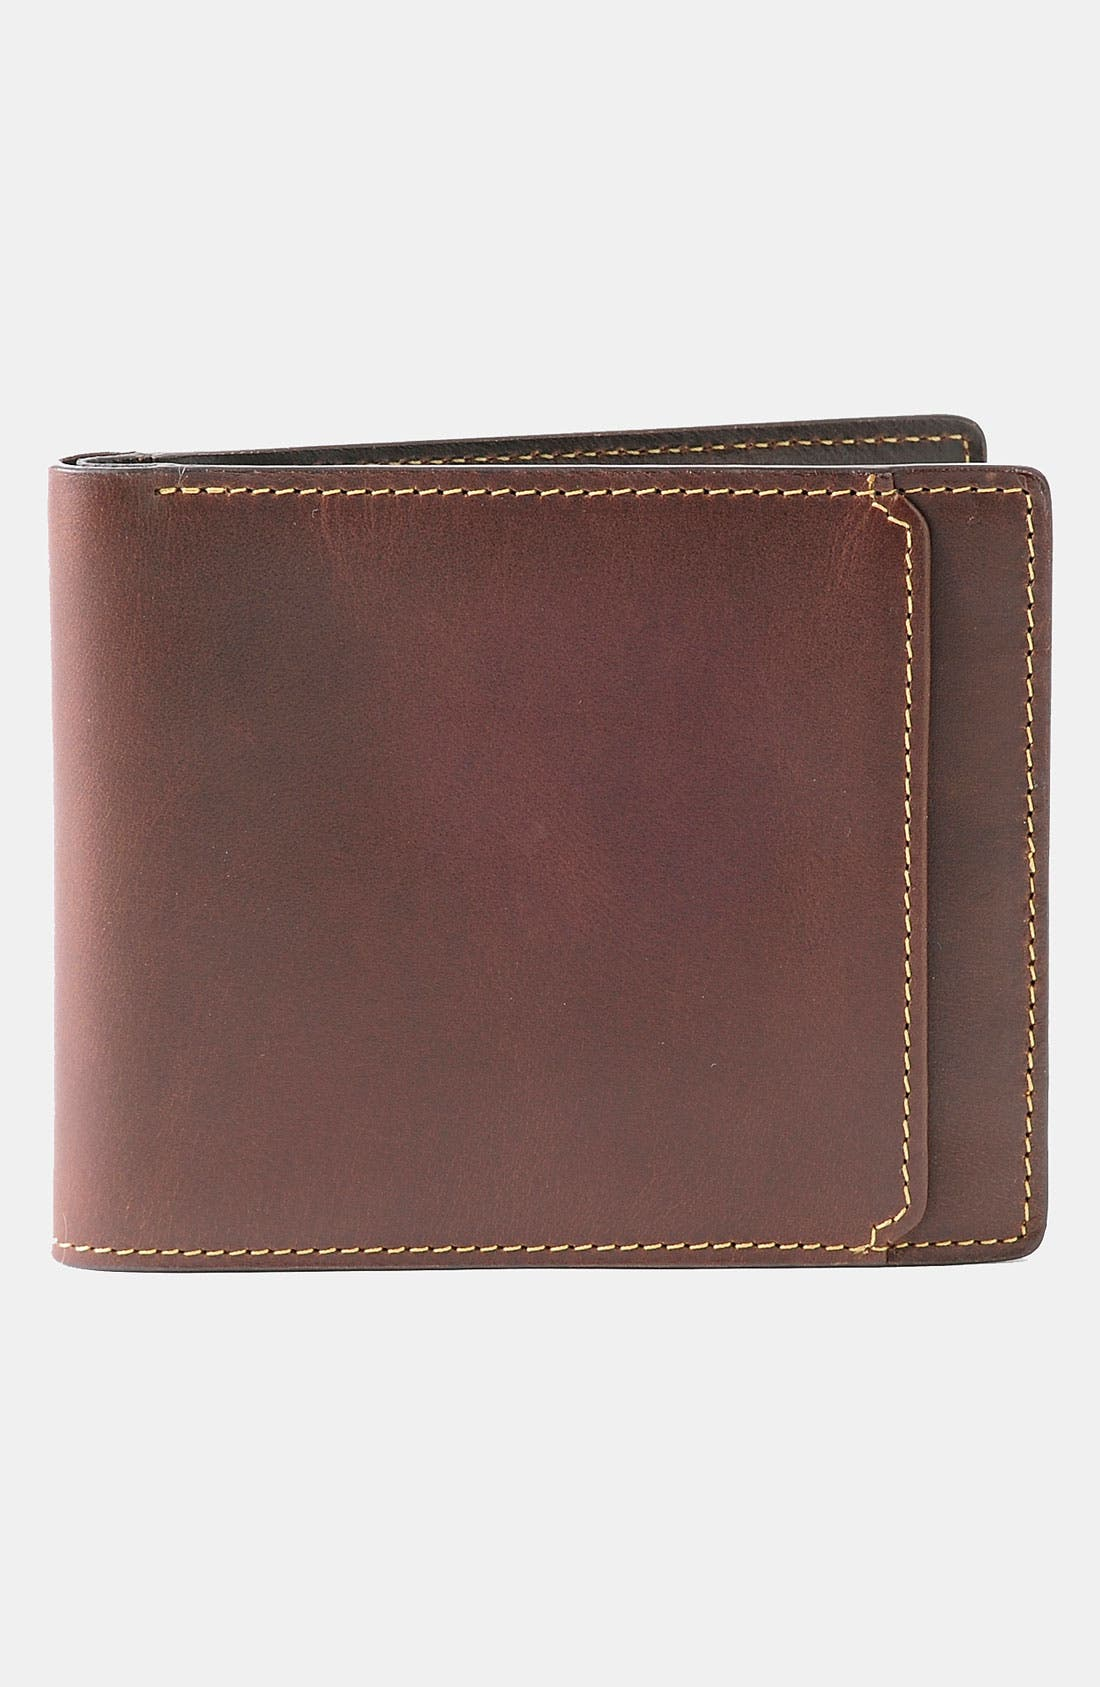 'Bryant' RFID Blocker Slimfold Wallet,                             Main thumbnail 1, color,                             ANTIQUE MAHOGANY